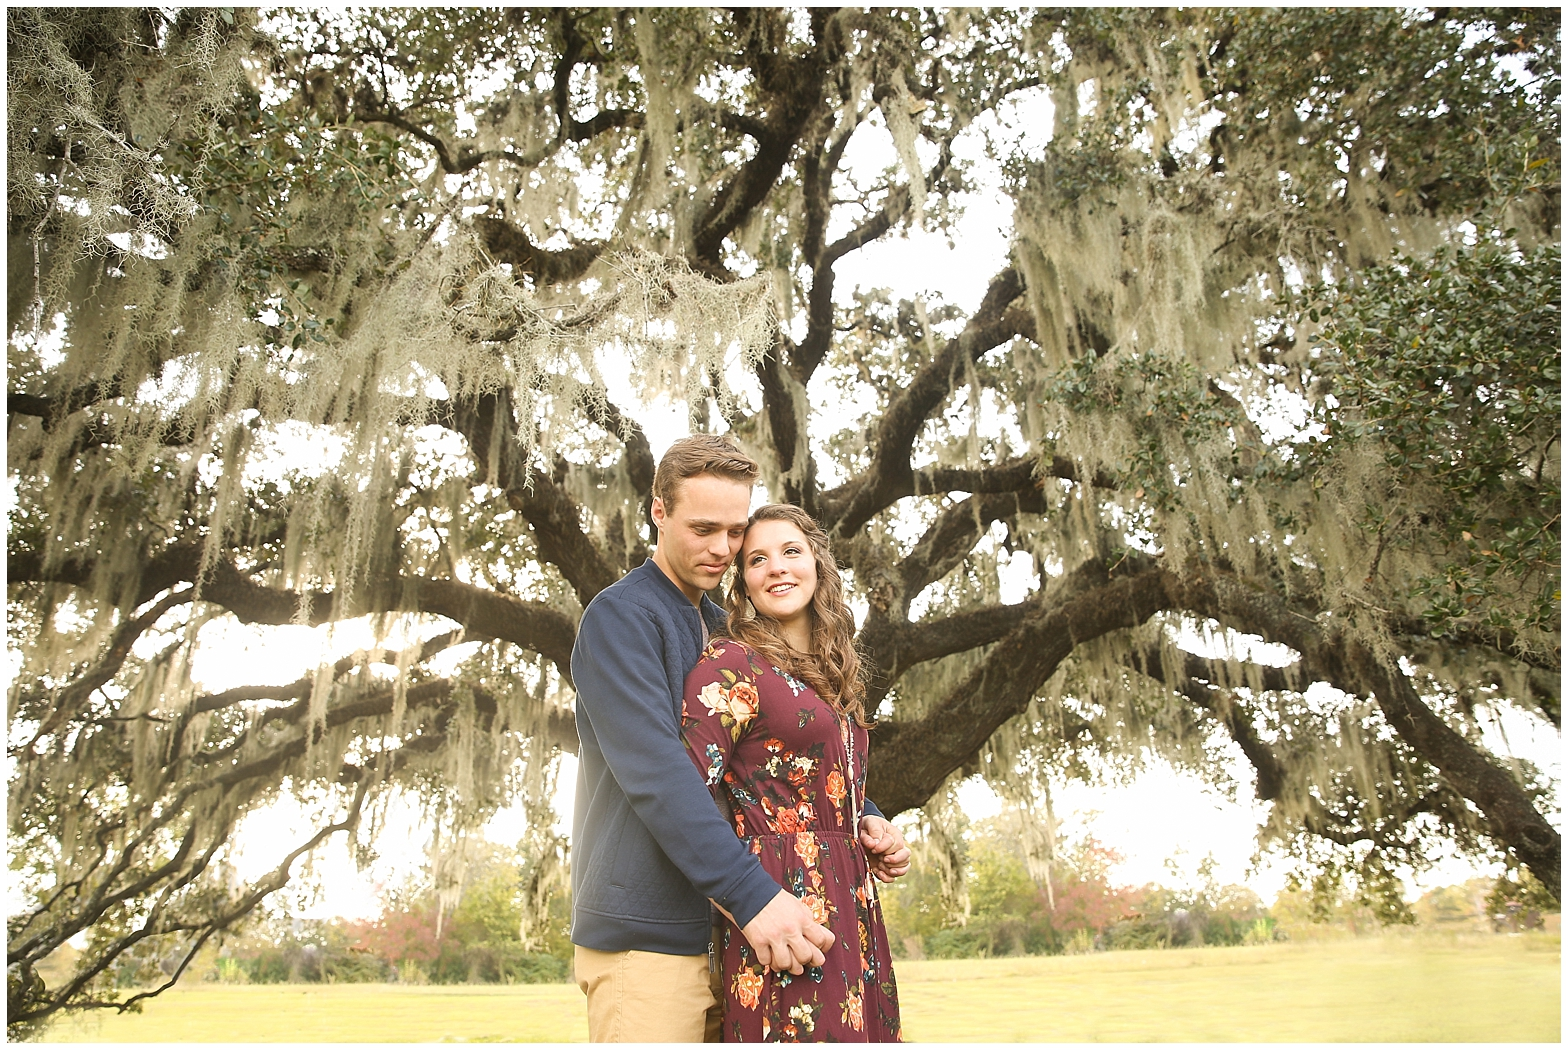 Engagement Photography, Southern Engagement Photography, Spanish Moss, romantic engagement photography